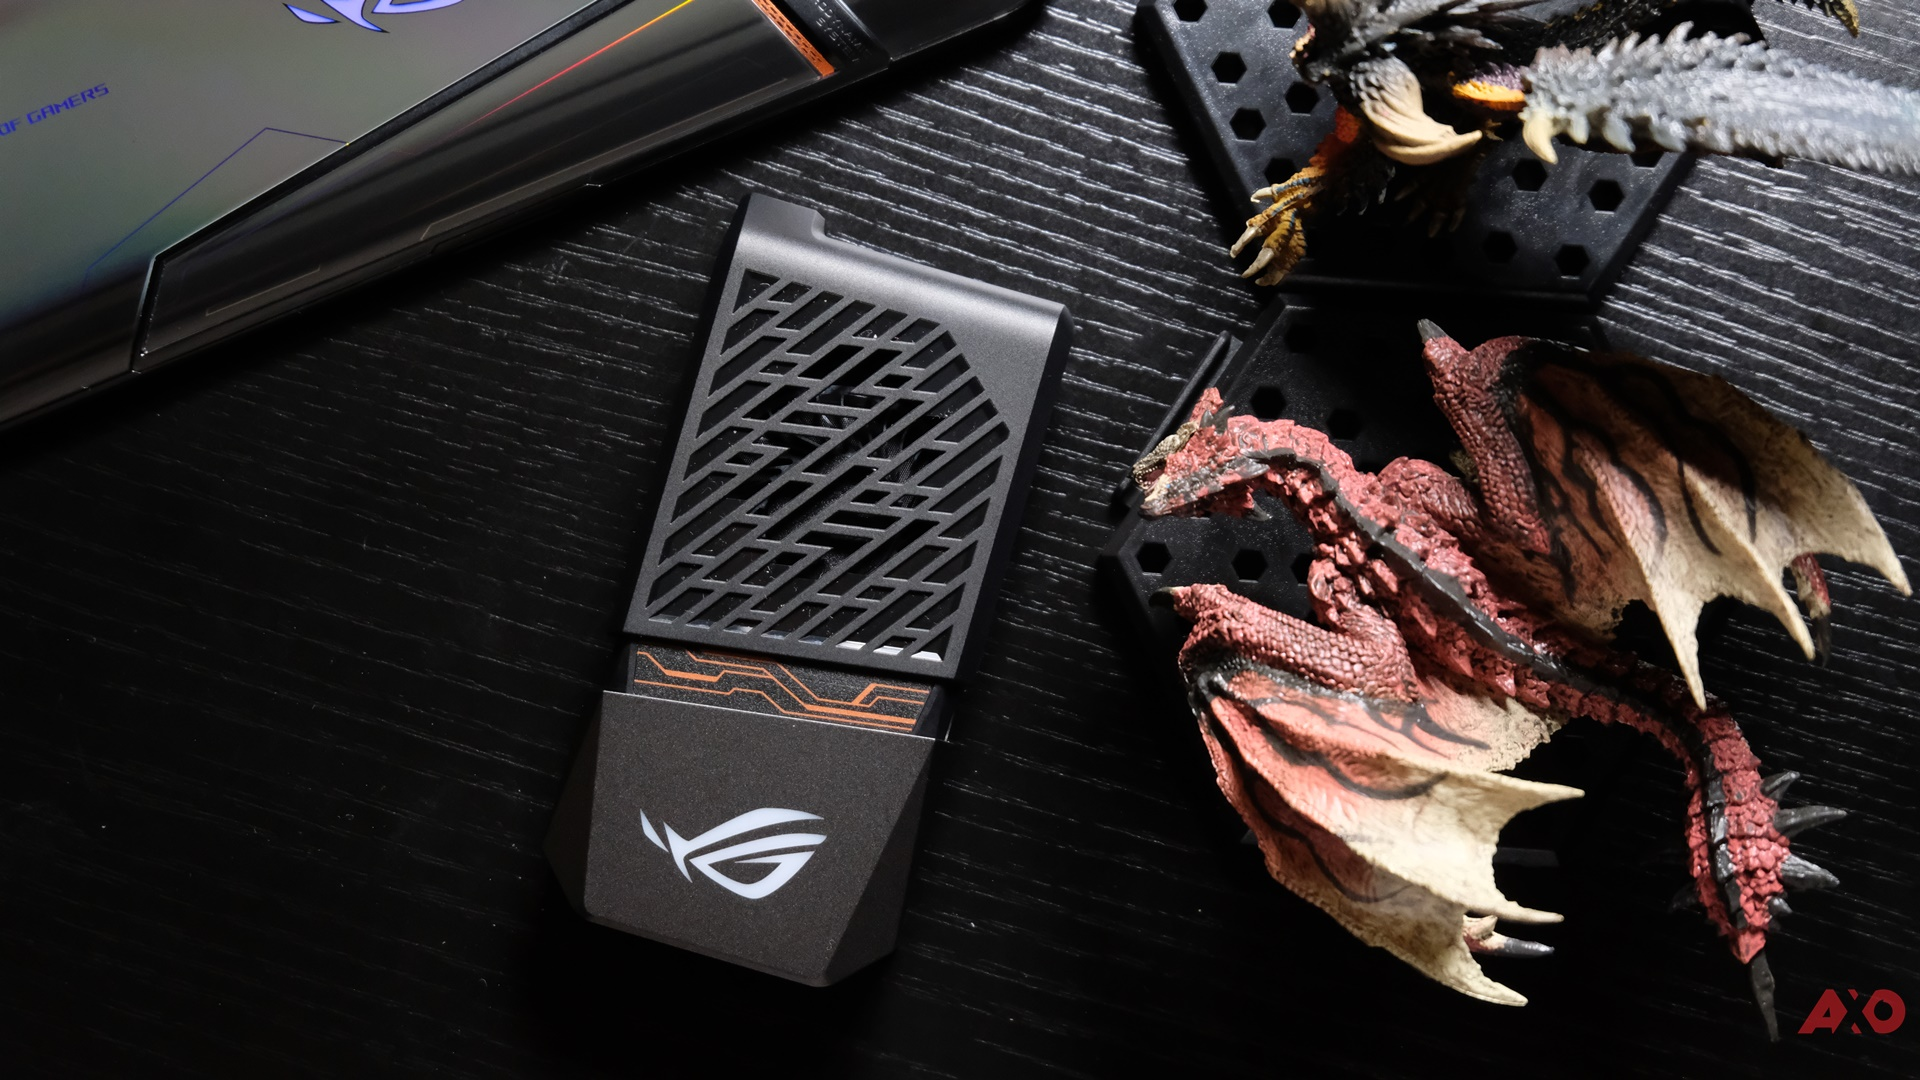 Straight to the Point: Asus ROG Phone 2 - An AXO Review 30